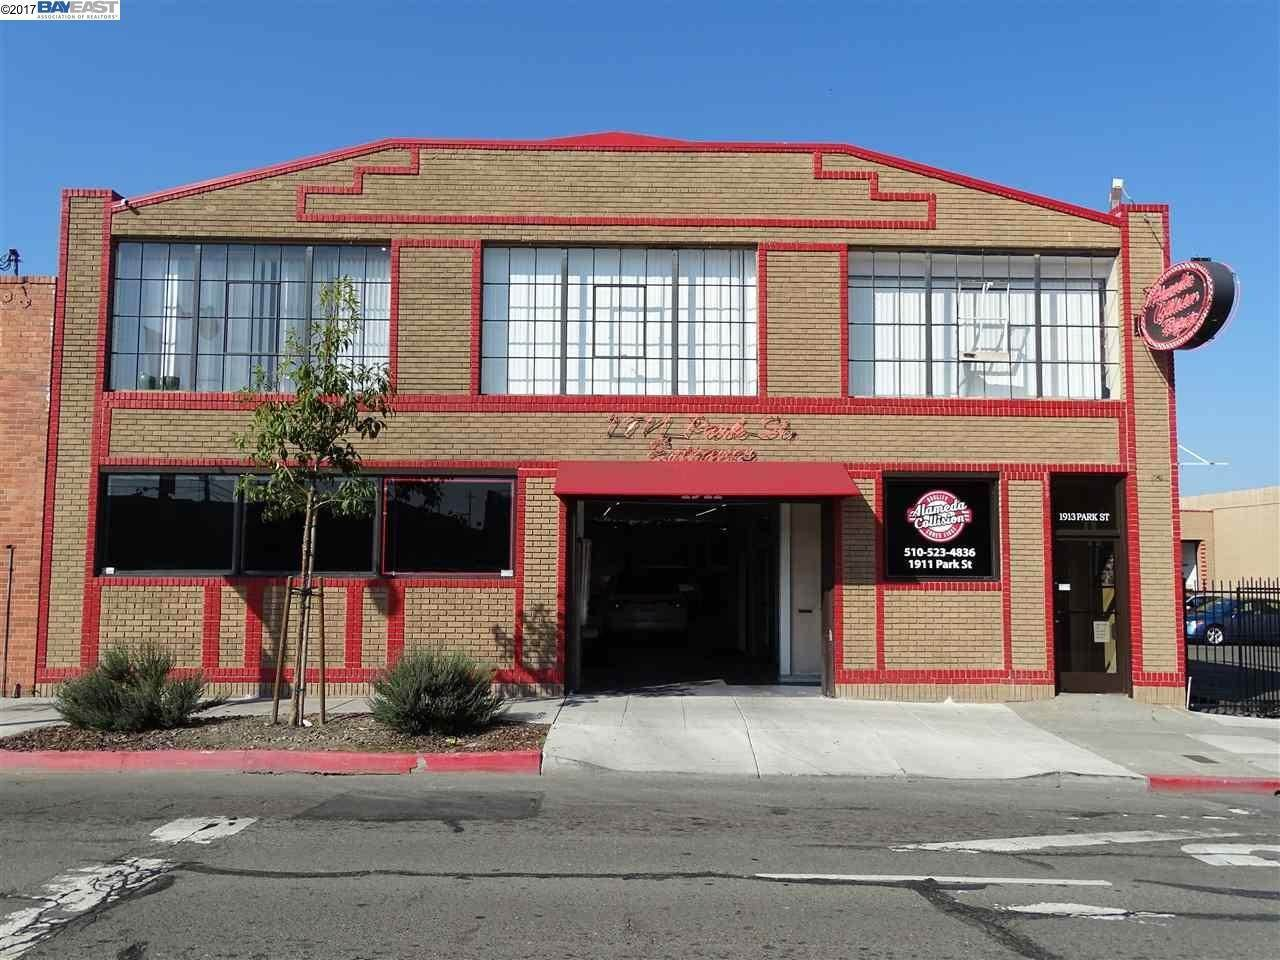 Commercial / Industrial for Sale at 1913 Park Street Alameda, California 94501 United States